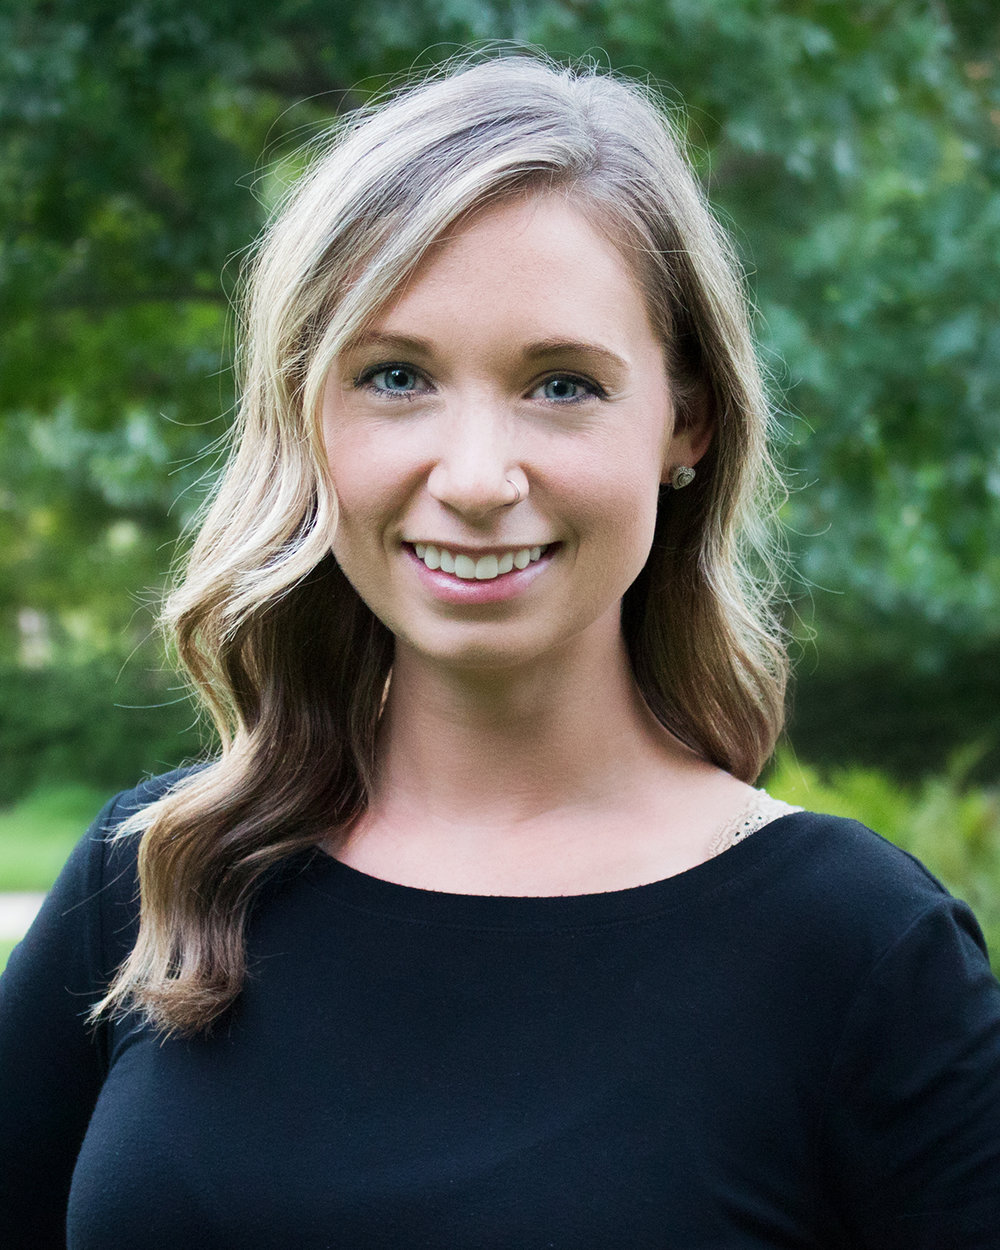 Ashley Shovel, M.S., LPC-Intern, Under the Supervision of Dr. Ryan Holliman, LPC-S - Licensed Professional Counselor- InternEMDR TrainedGottman Level I TrainedInsurance: N/APrivate Pay RateLocation: Denton, Texas